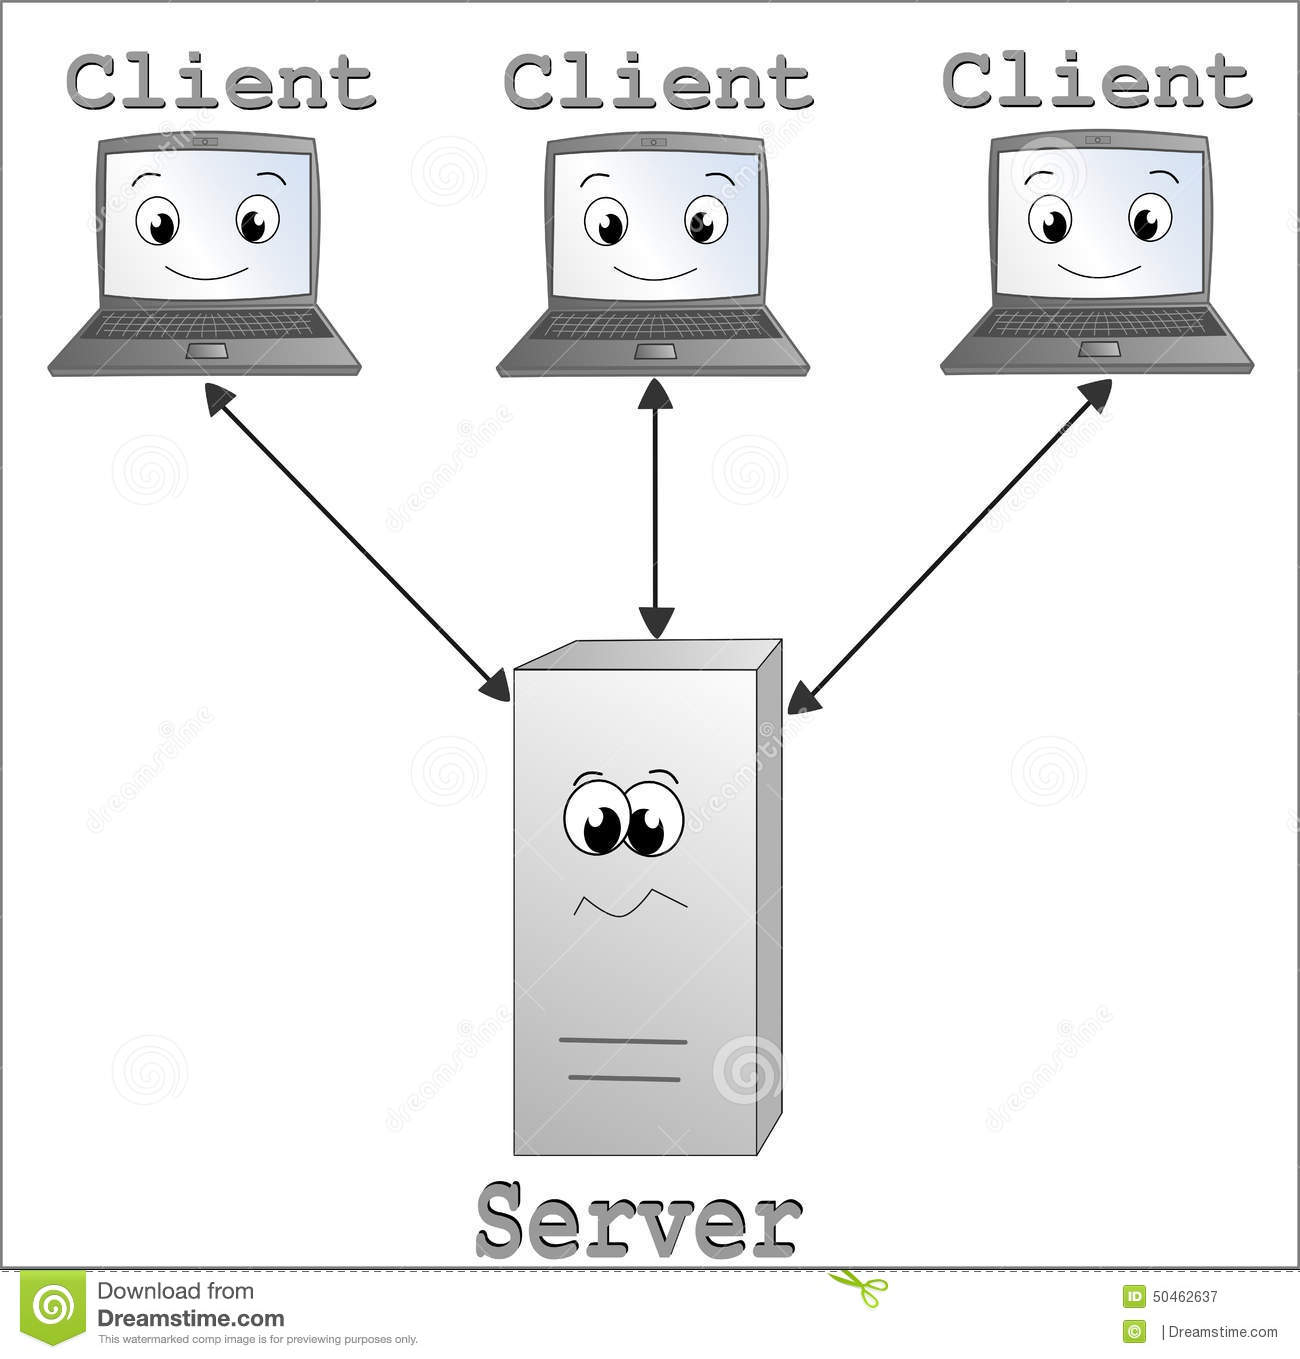 client server model In my previous post, we dived into how the web works on a basic level, including the interaction between a client (your computer) and a server (another computer which.